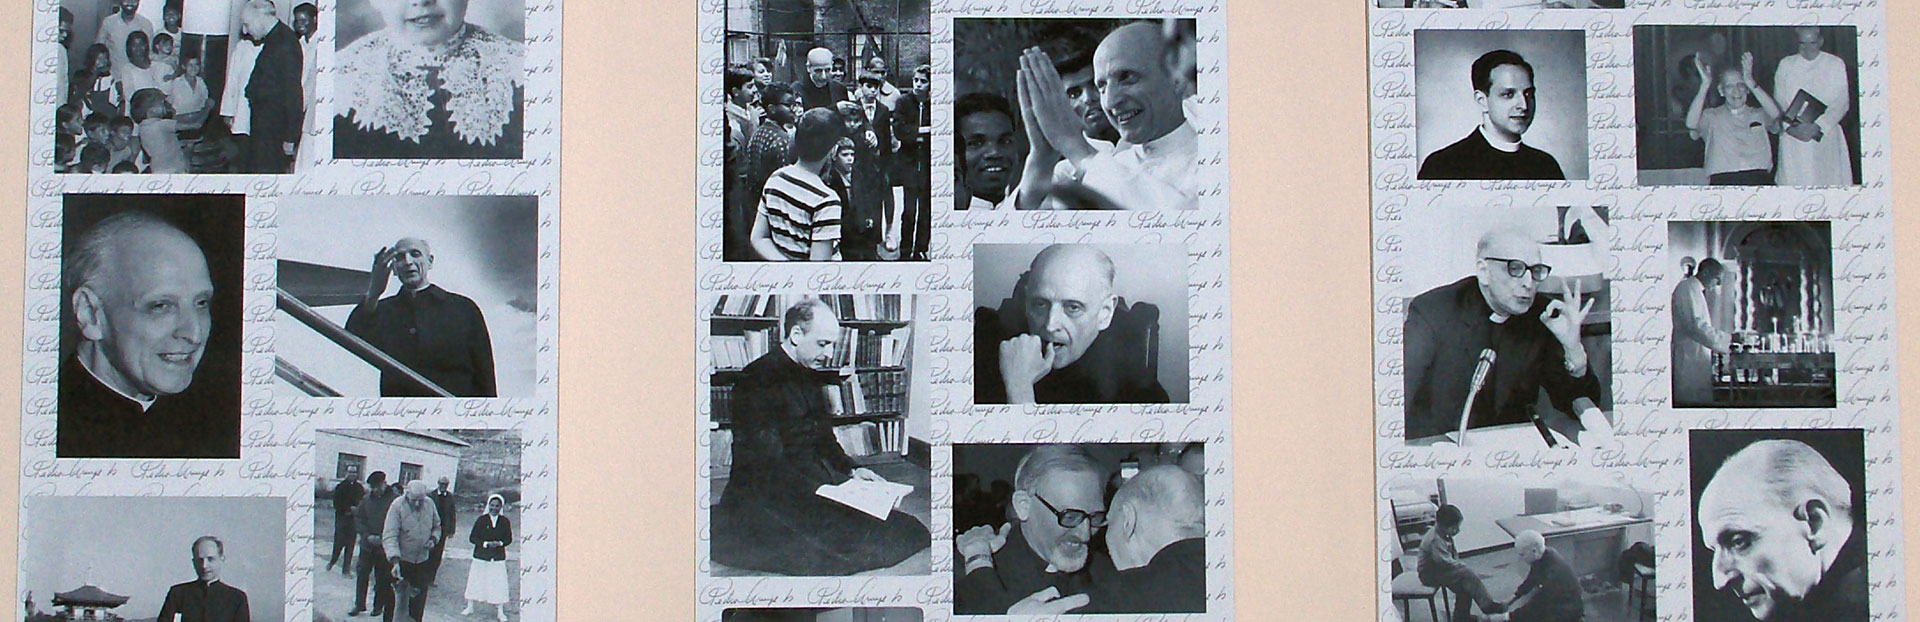 On 14 November, we remember Fr. Pedro Arrupe